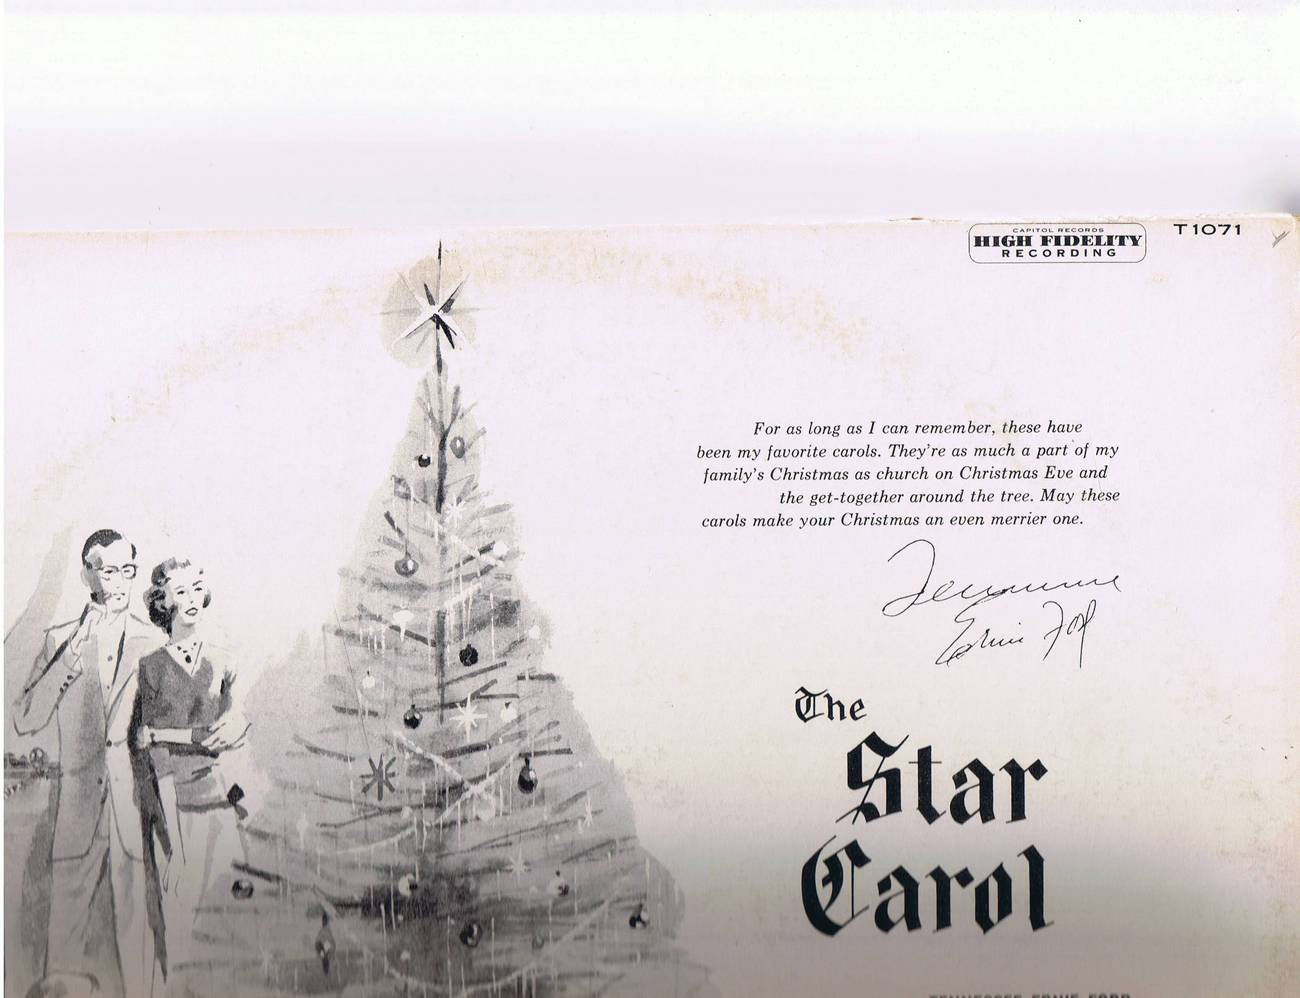 Tennessee Ernie Ford - A Star Carol - Capitol T 1071 - Autographed/Signed